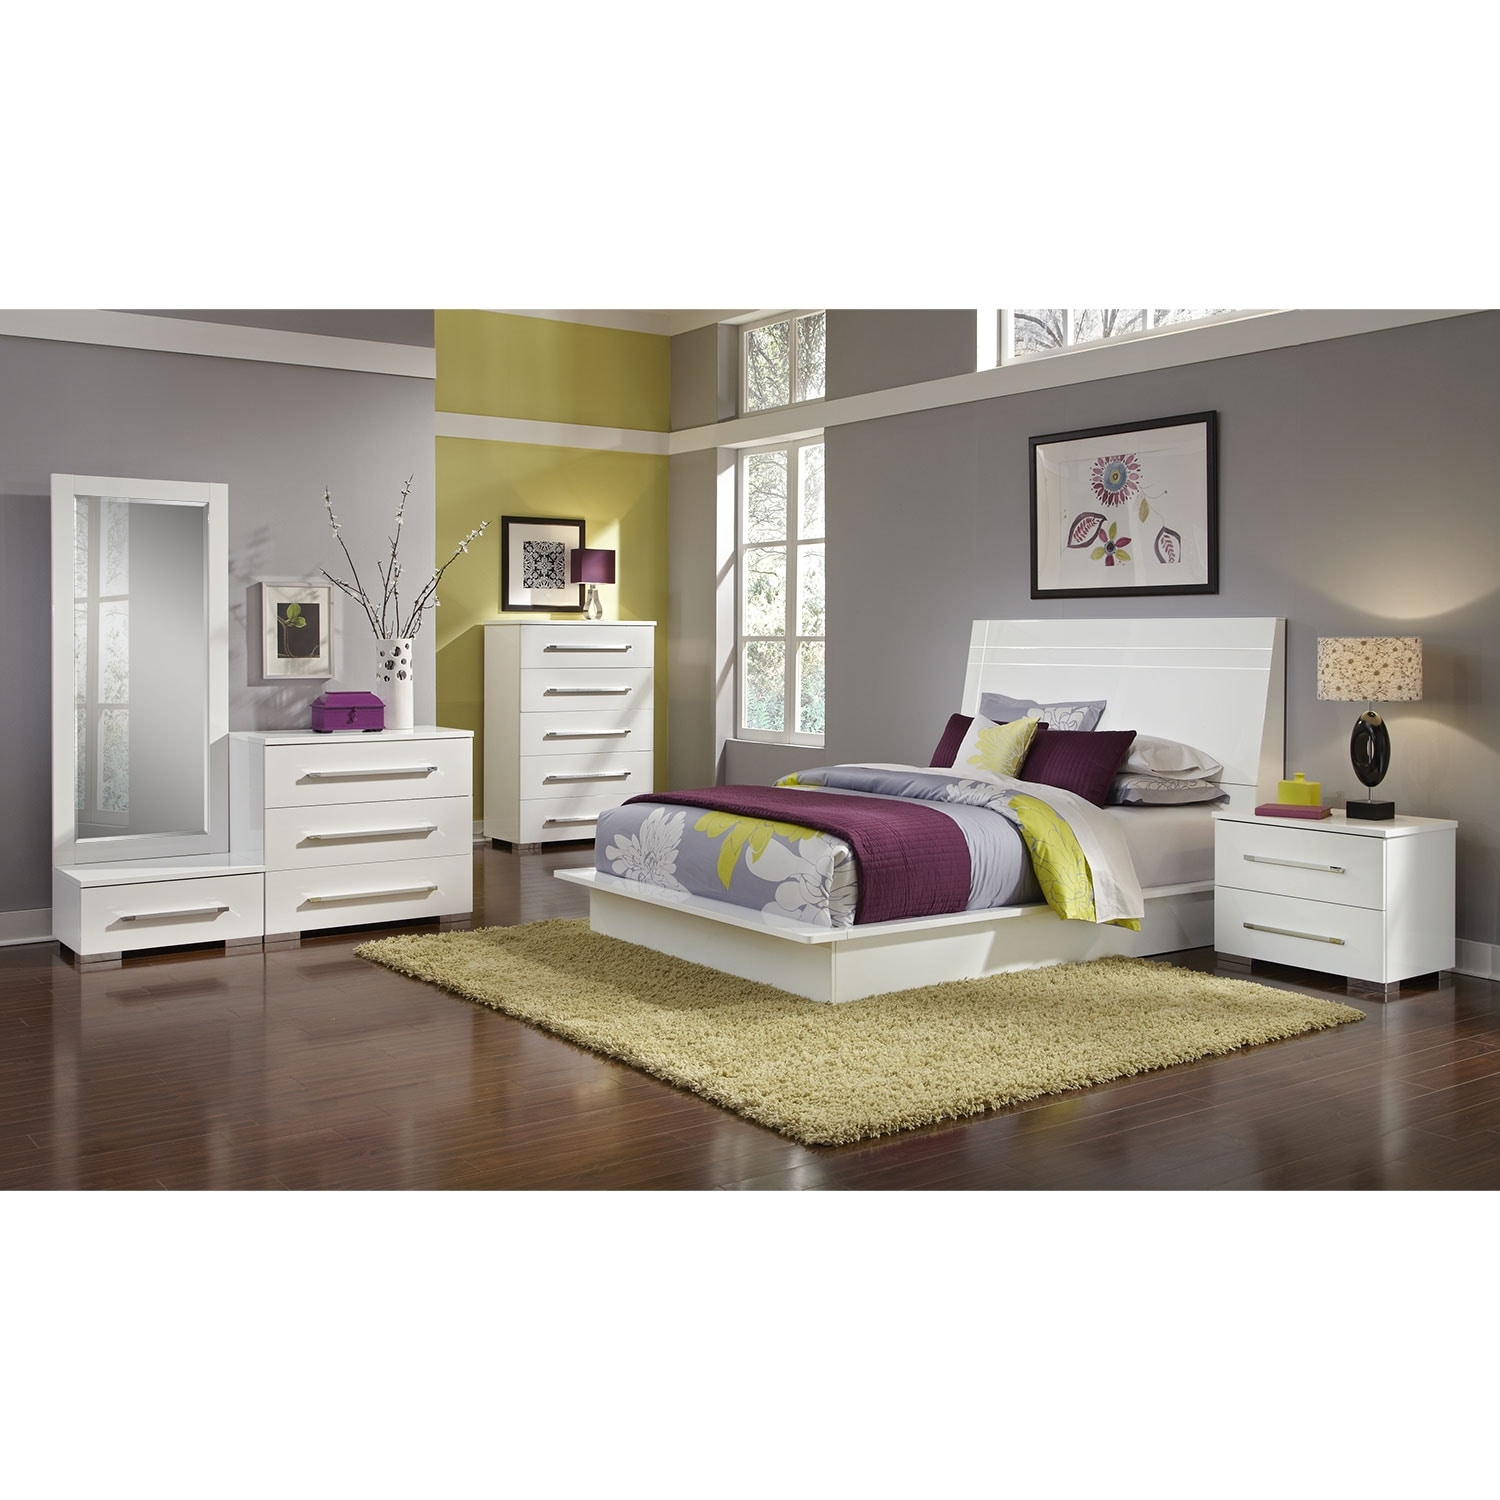 Dimora 7-Piece King Panel Bedroom Set - White